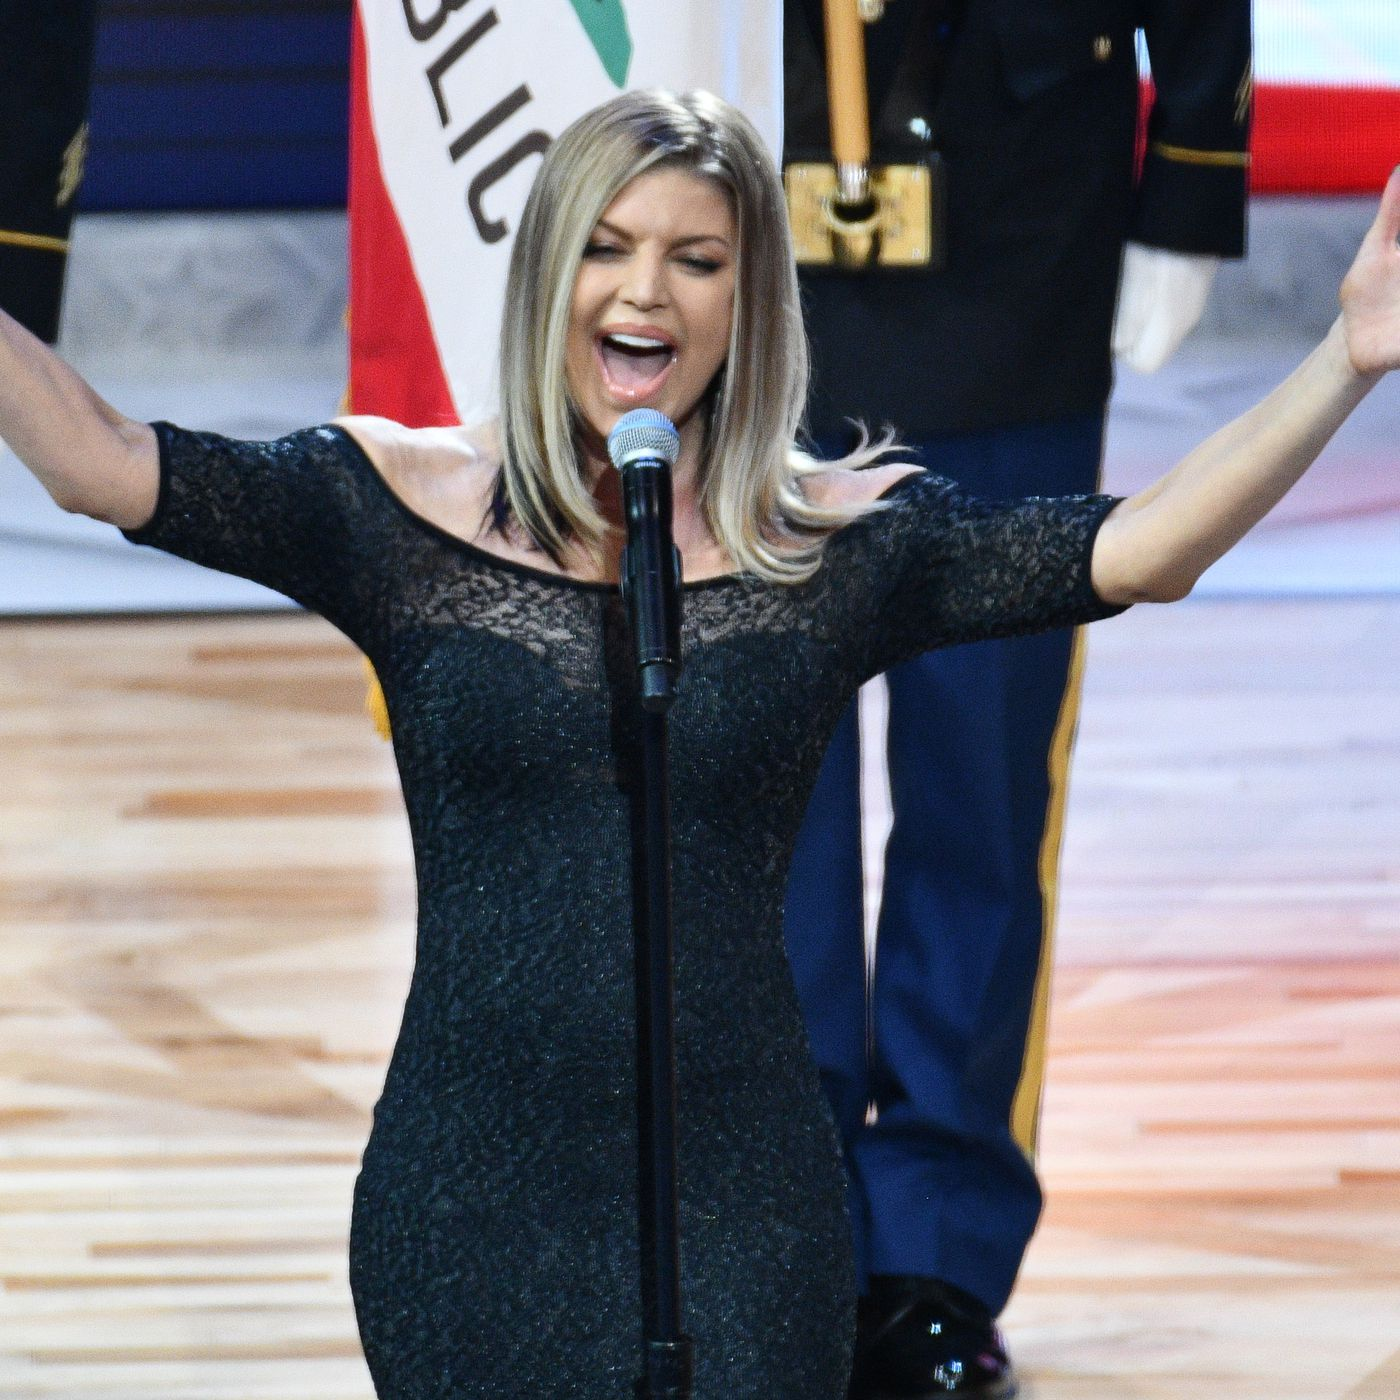 Fergie S Infamous Nba All Star National Anthem Gets Even Better When You Know The Whole Story Sbnation Com